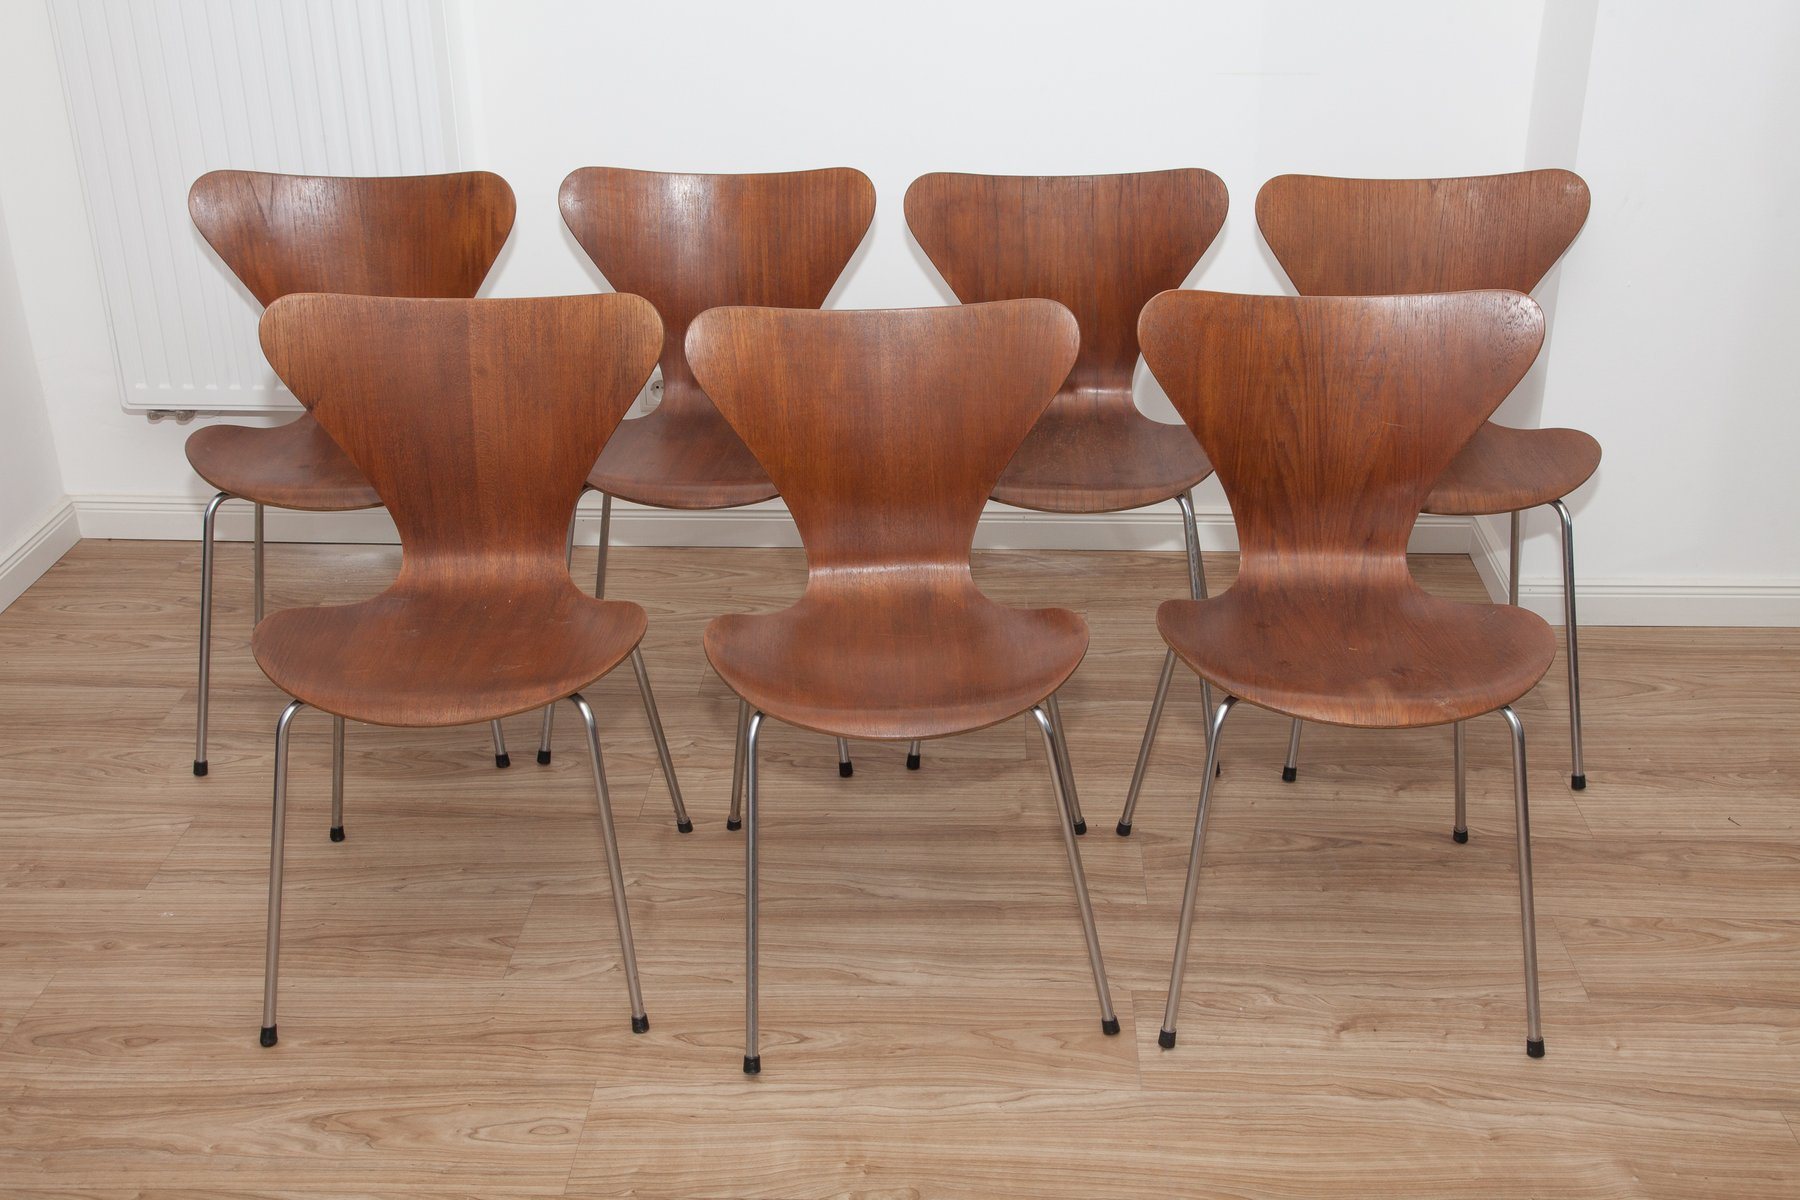 Model 3107 Teak & Plywood Ant Chairs by Arne Jacobsen for Fritz